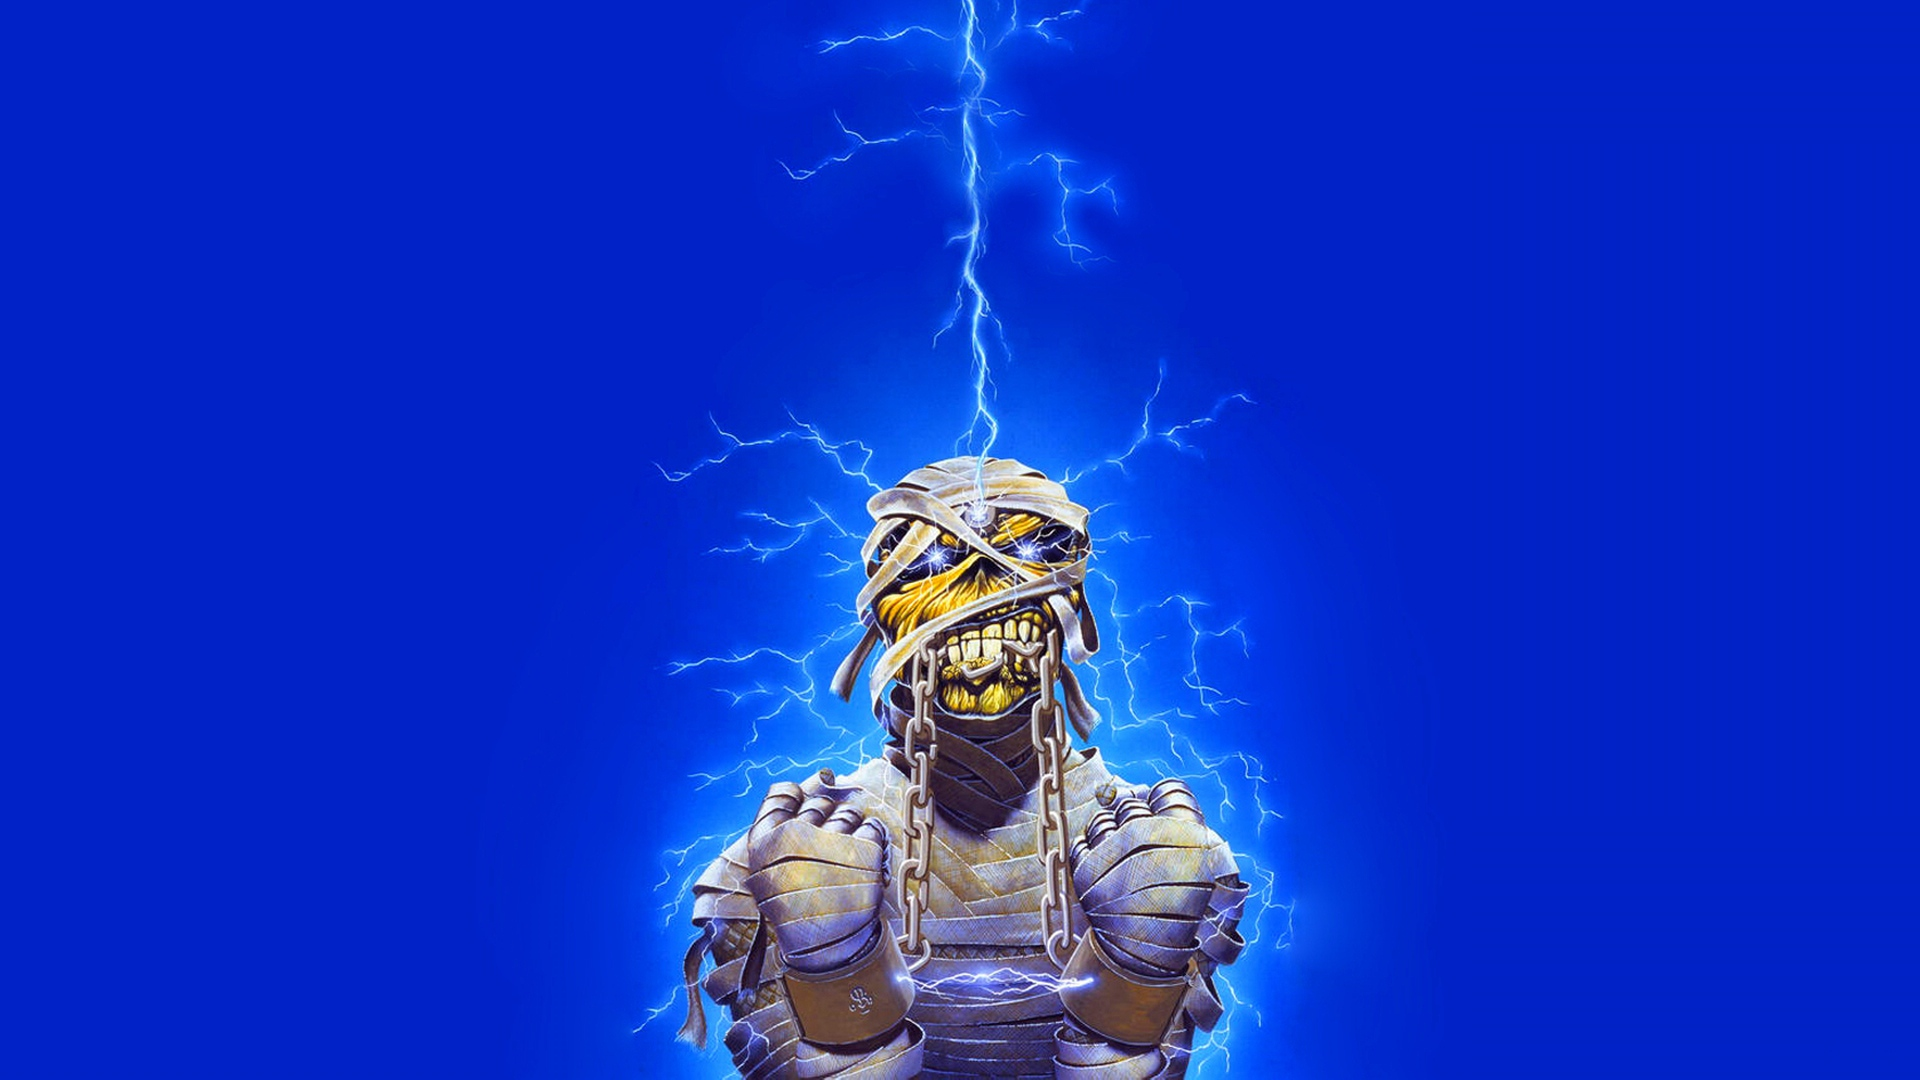 download wallpaper 1920x1080 iron maiden, undead, lightning, energy